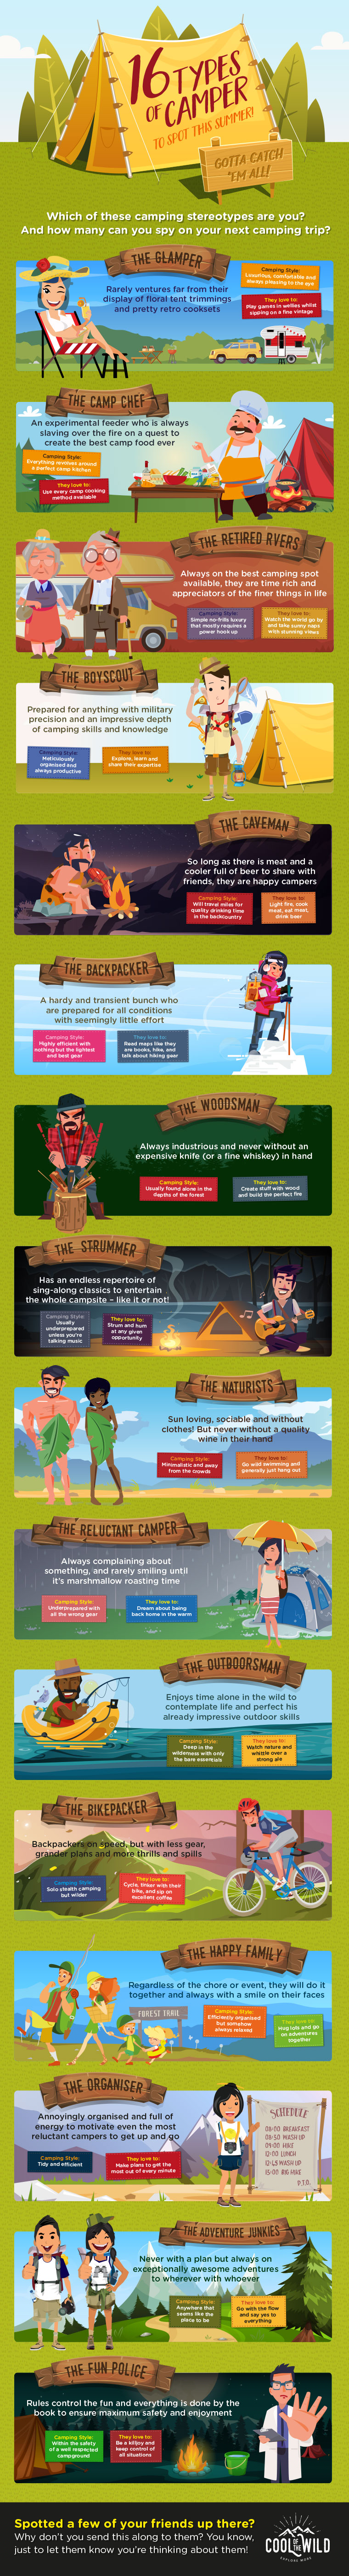 The Kinds Of Campers You'll See This Summer - Infographic